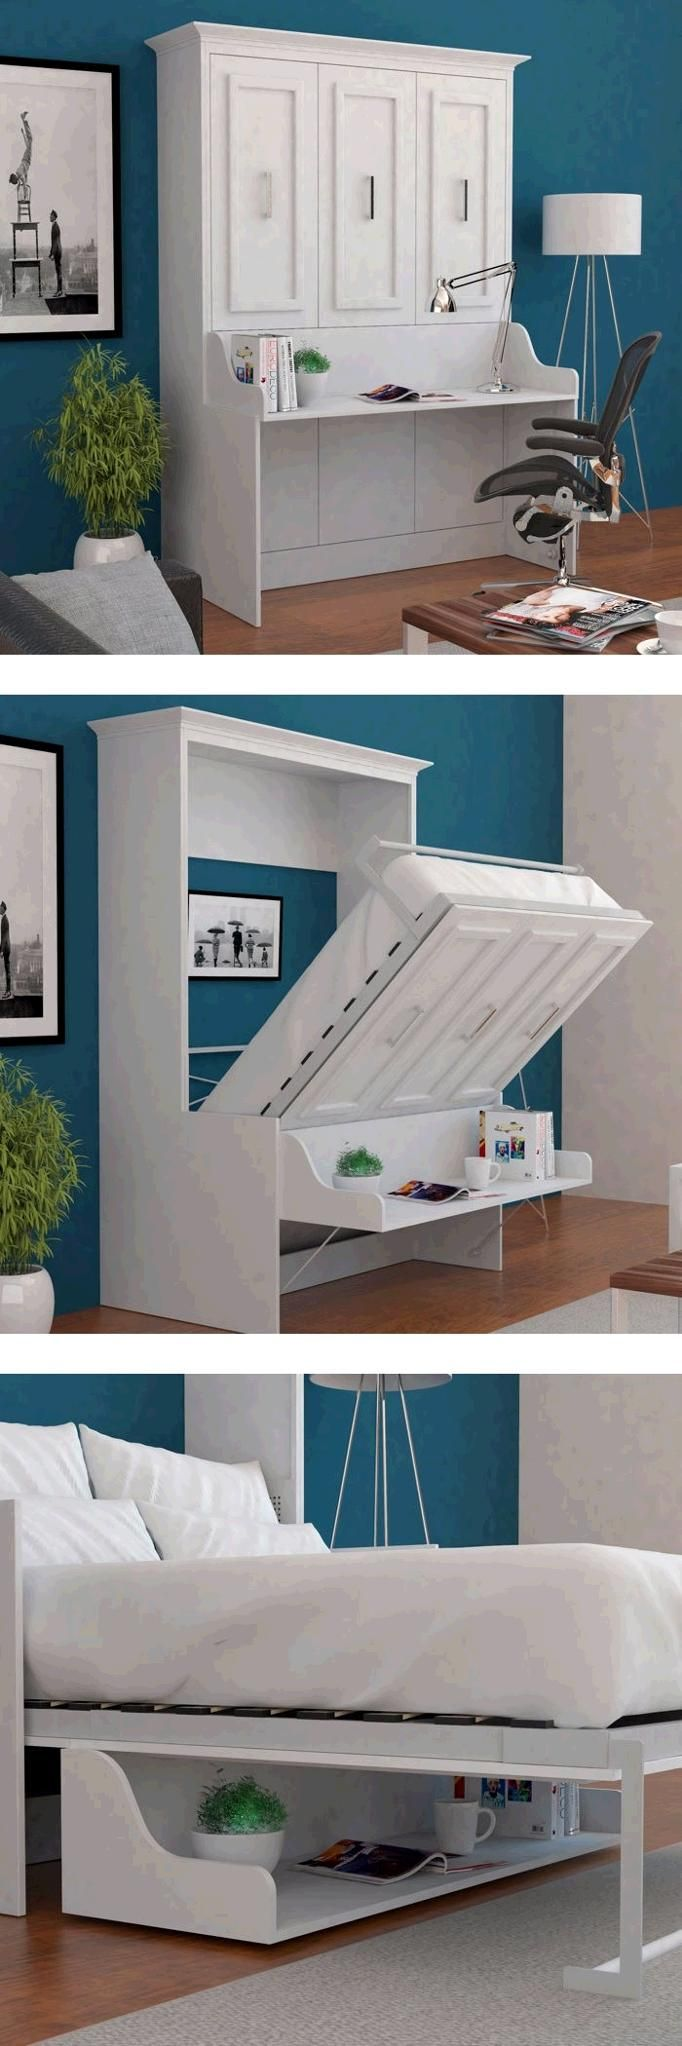 The Porter full wall bed with a desk built in is a truly unique and versatile piece. Transform your home office into a room that is available and ready for guests in no time! Plus, the self leveling desk always maintains its orientation, even when the bed is open.